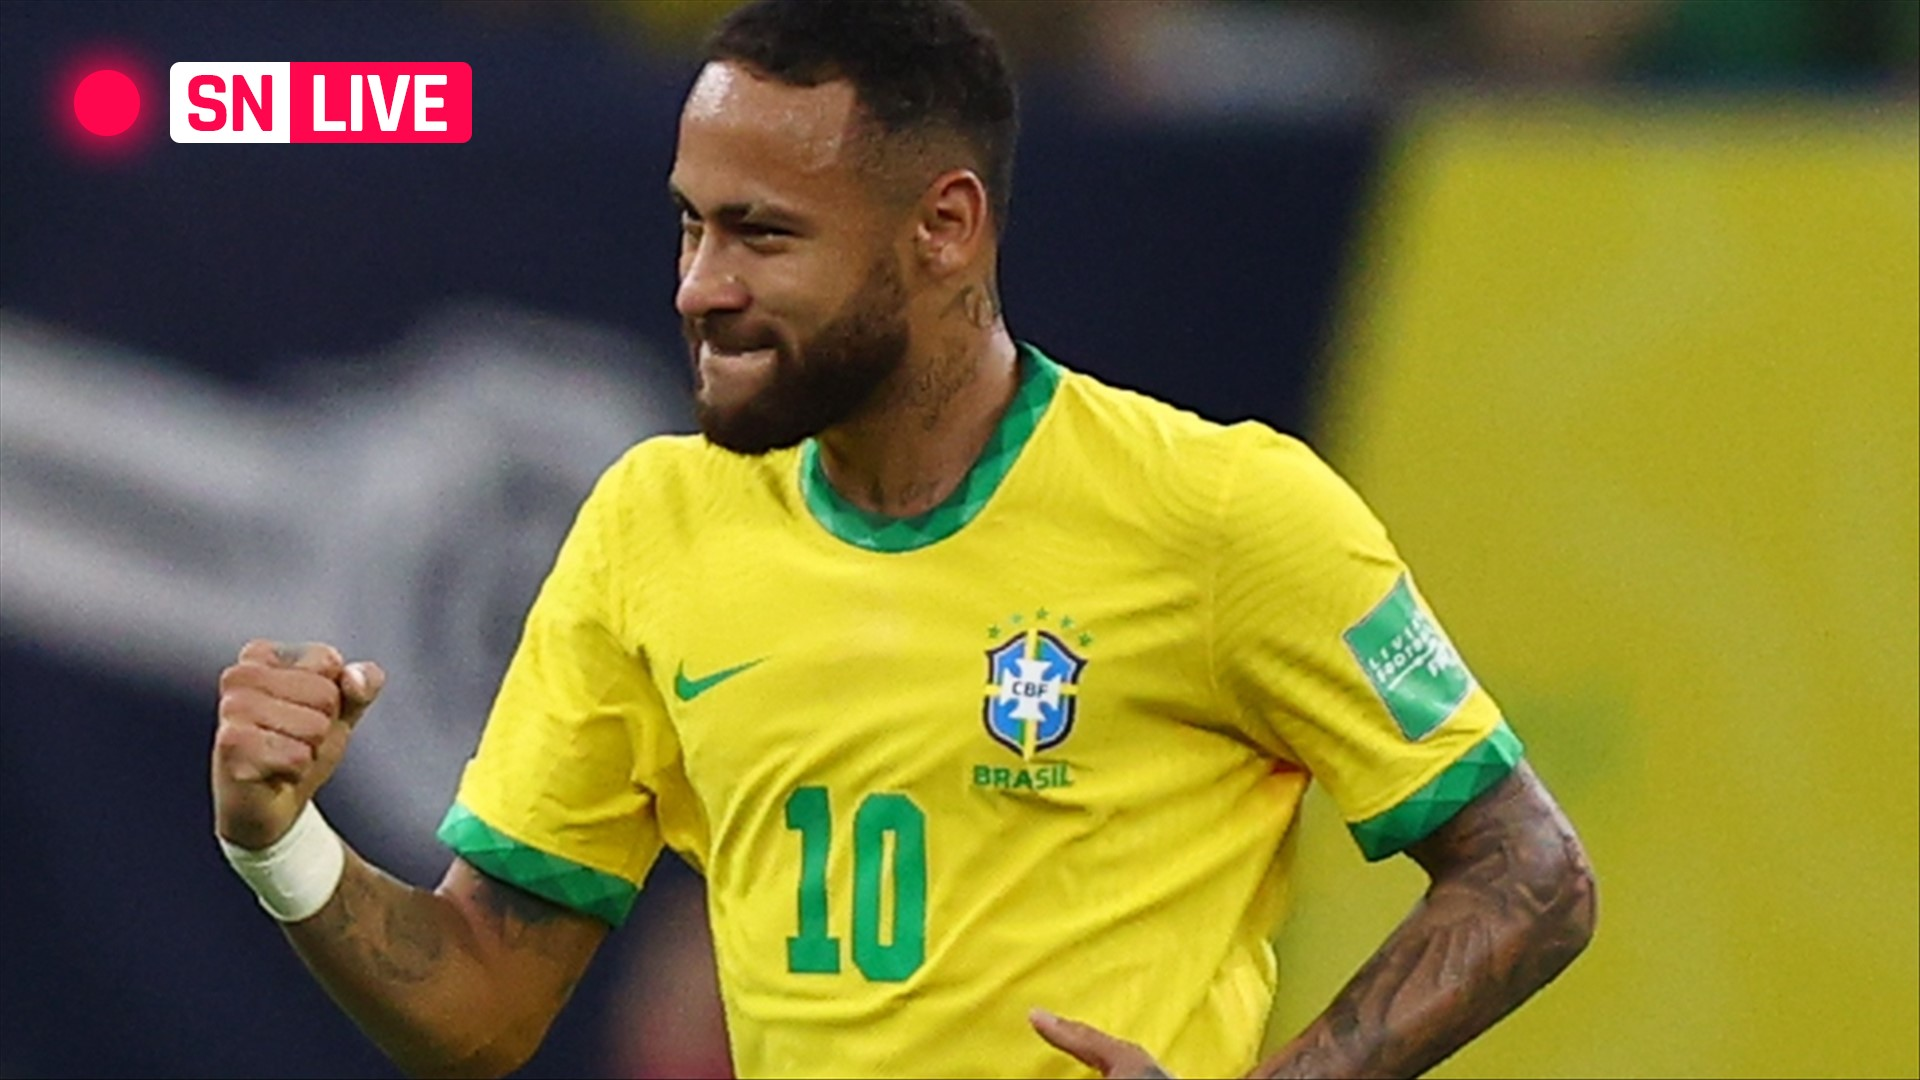 Brazil vs. Uruguay live score, updates, highlights from CONMEBOL World Cup qualifier